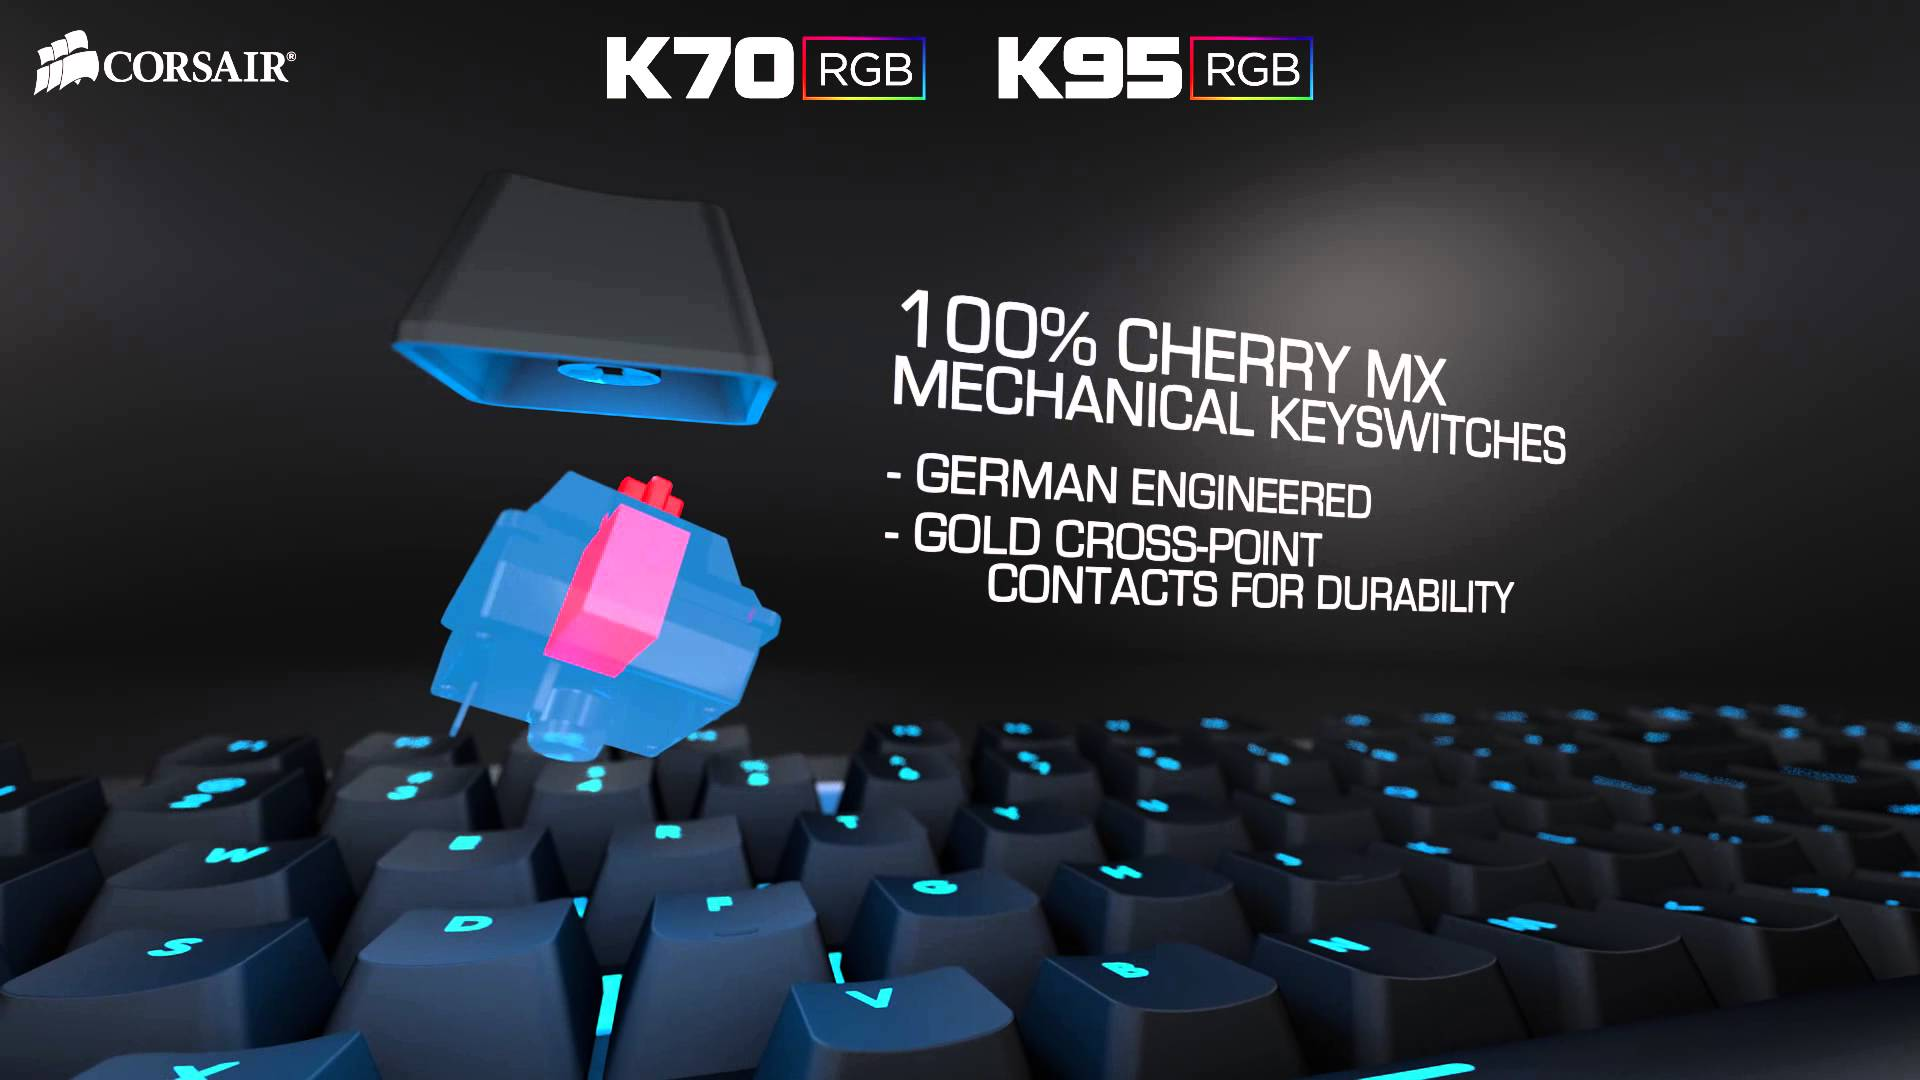 slide 1 of 9,show larger image, introducing the corsair k70 rgb and k95 rgb